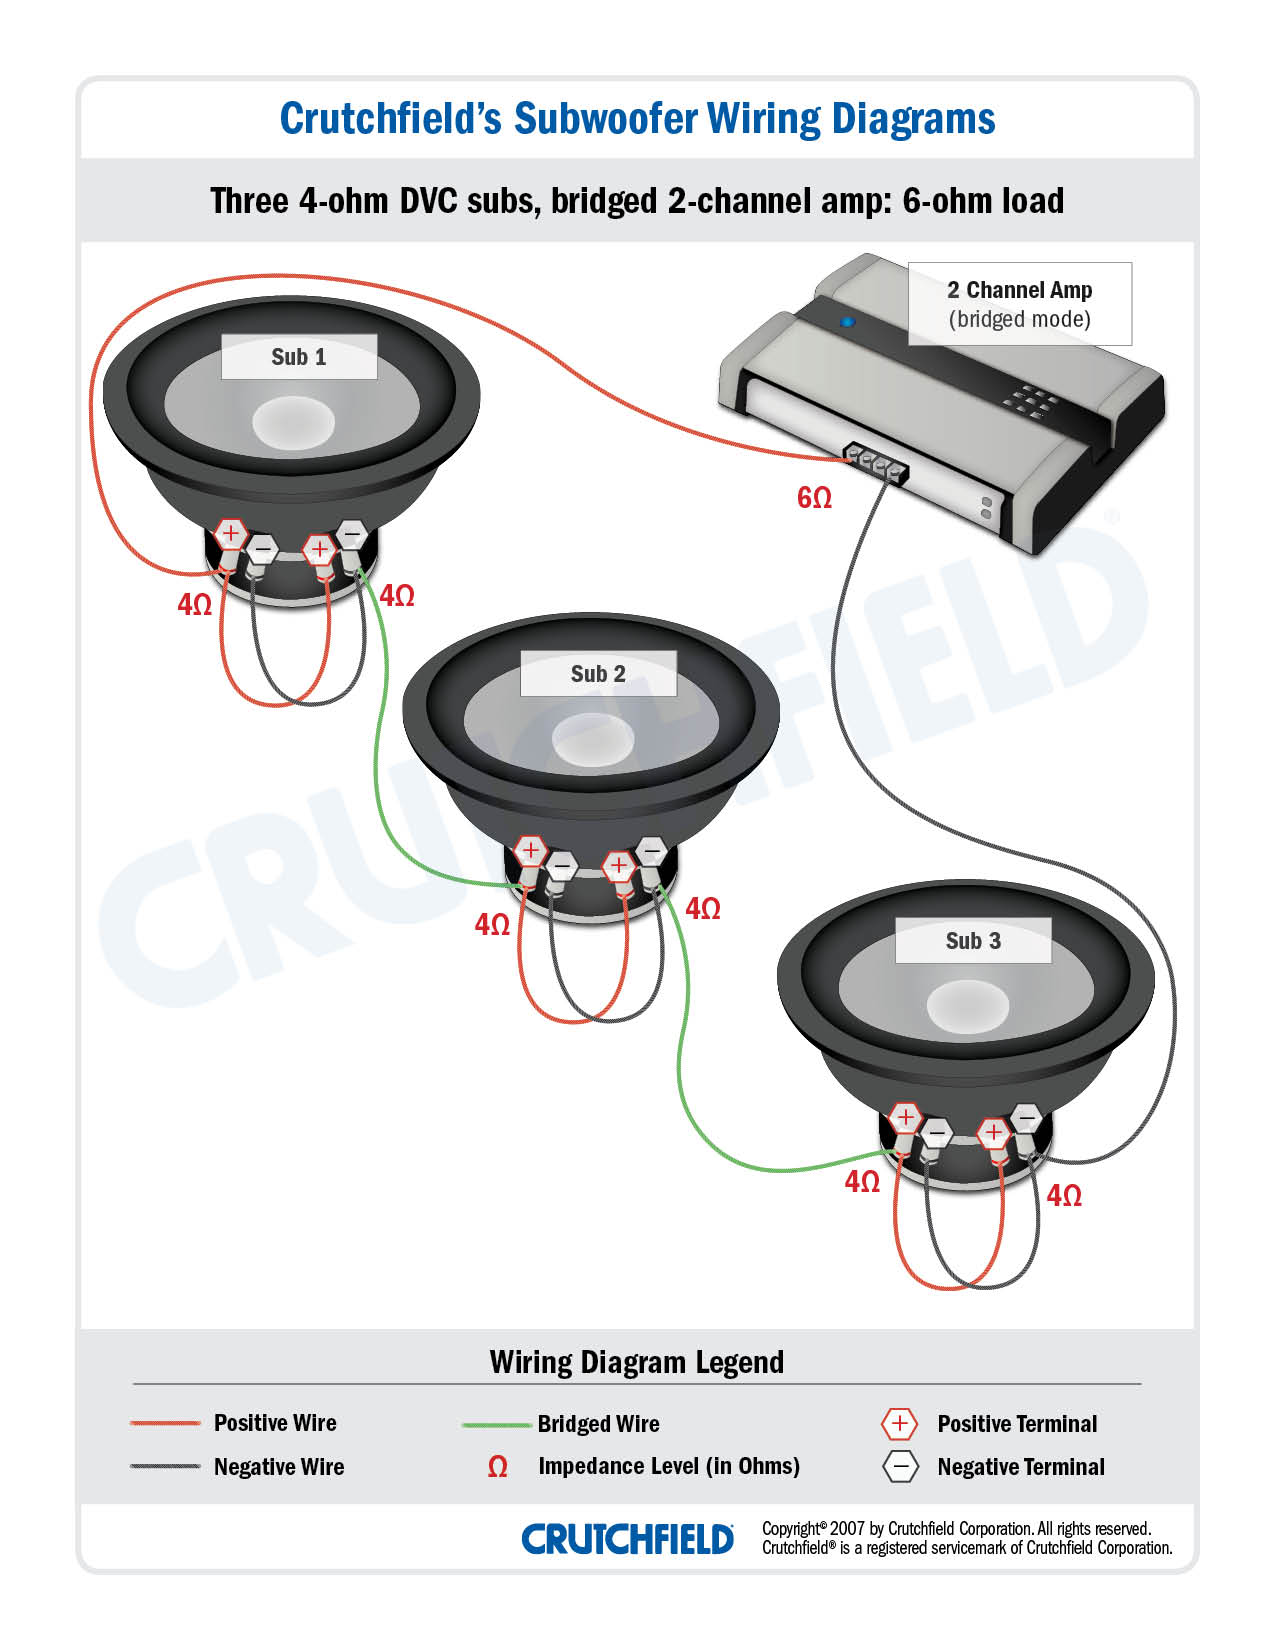 3 DVC 4 ohm 2 ch subwoofer wiring diagrams crutchfield wiring diagrams at bayanpartner.co